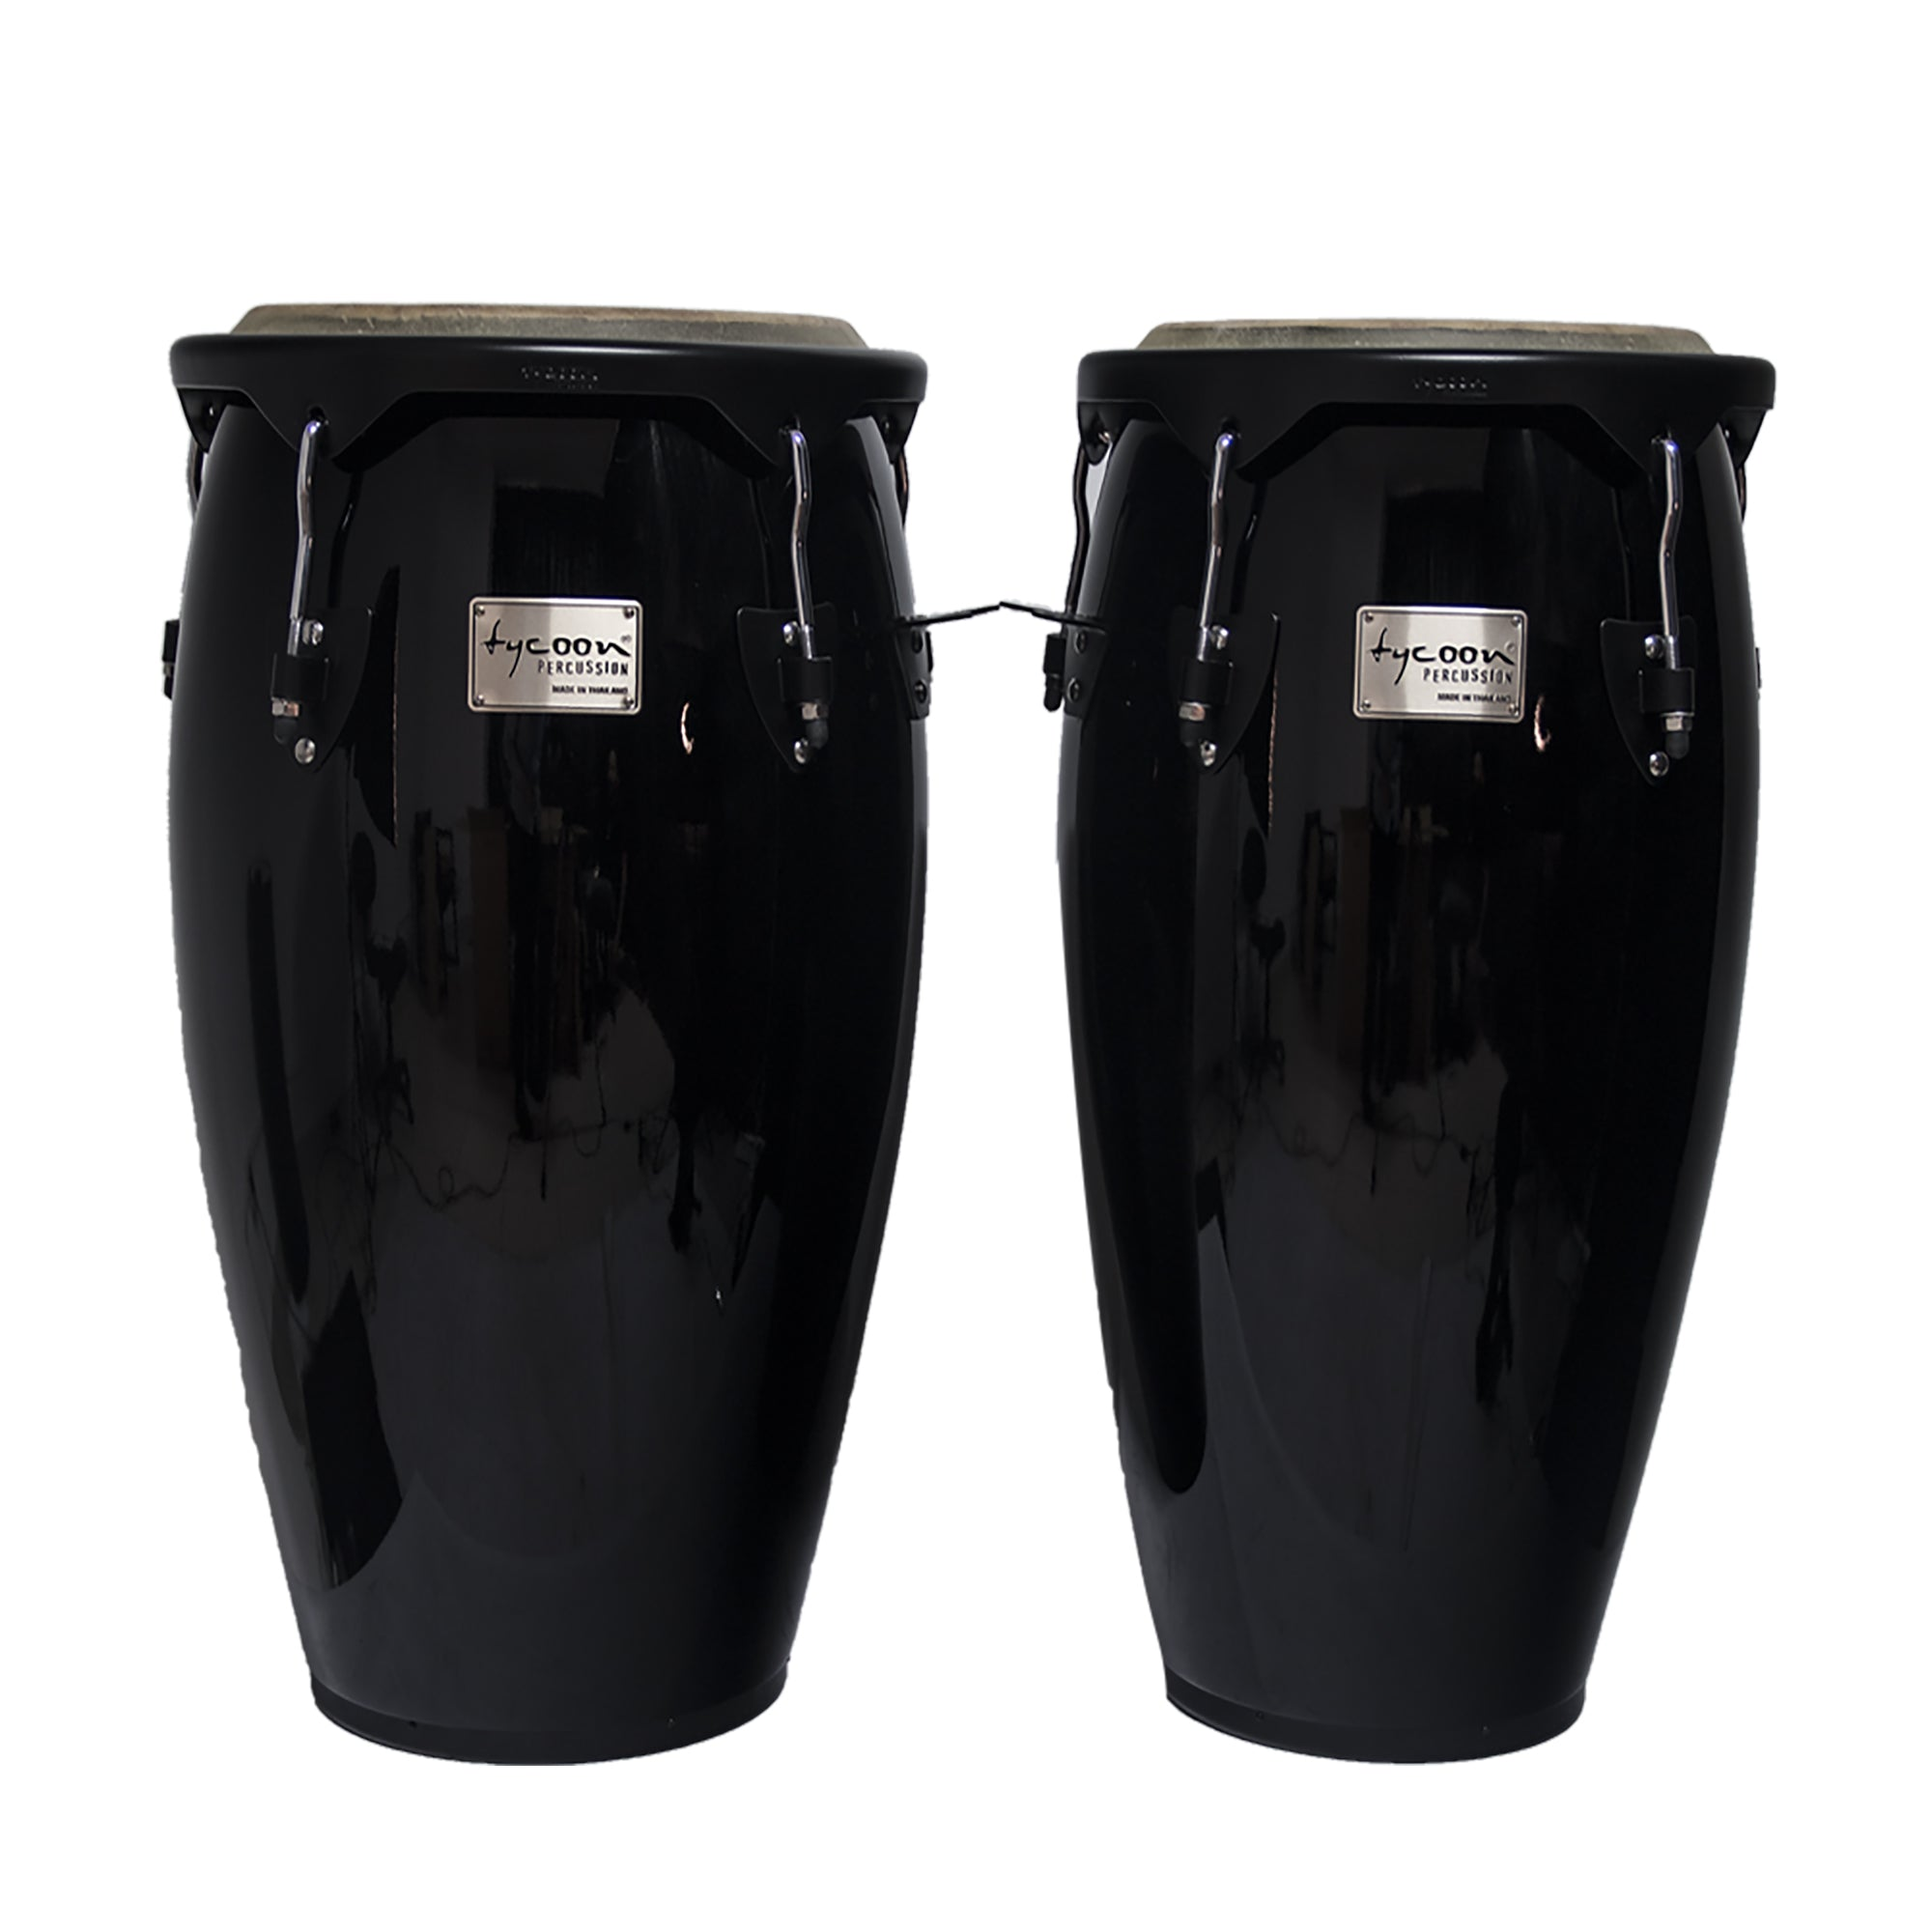 "CONGAS 11"" - 12"" TYCOON SUPREMO D/STAND STC-B BK/D"